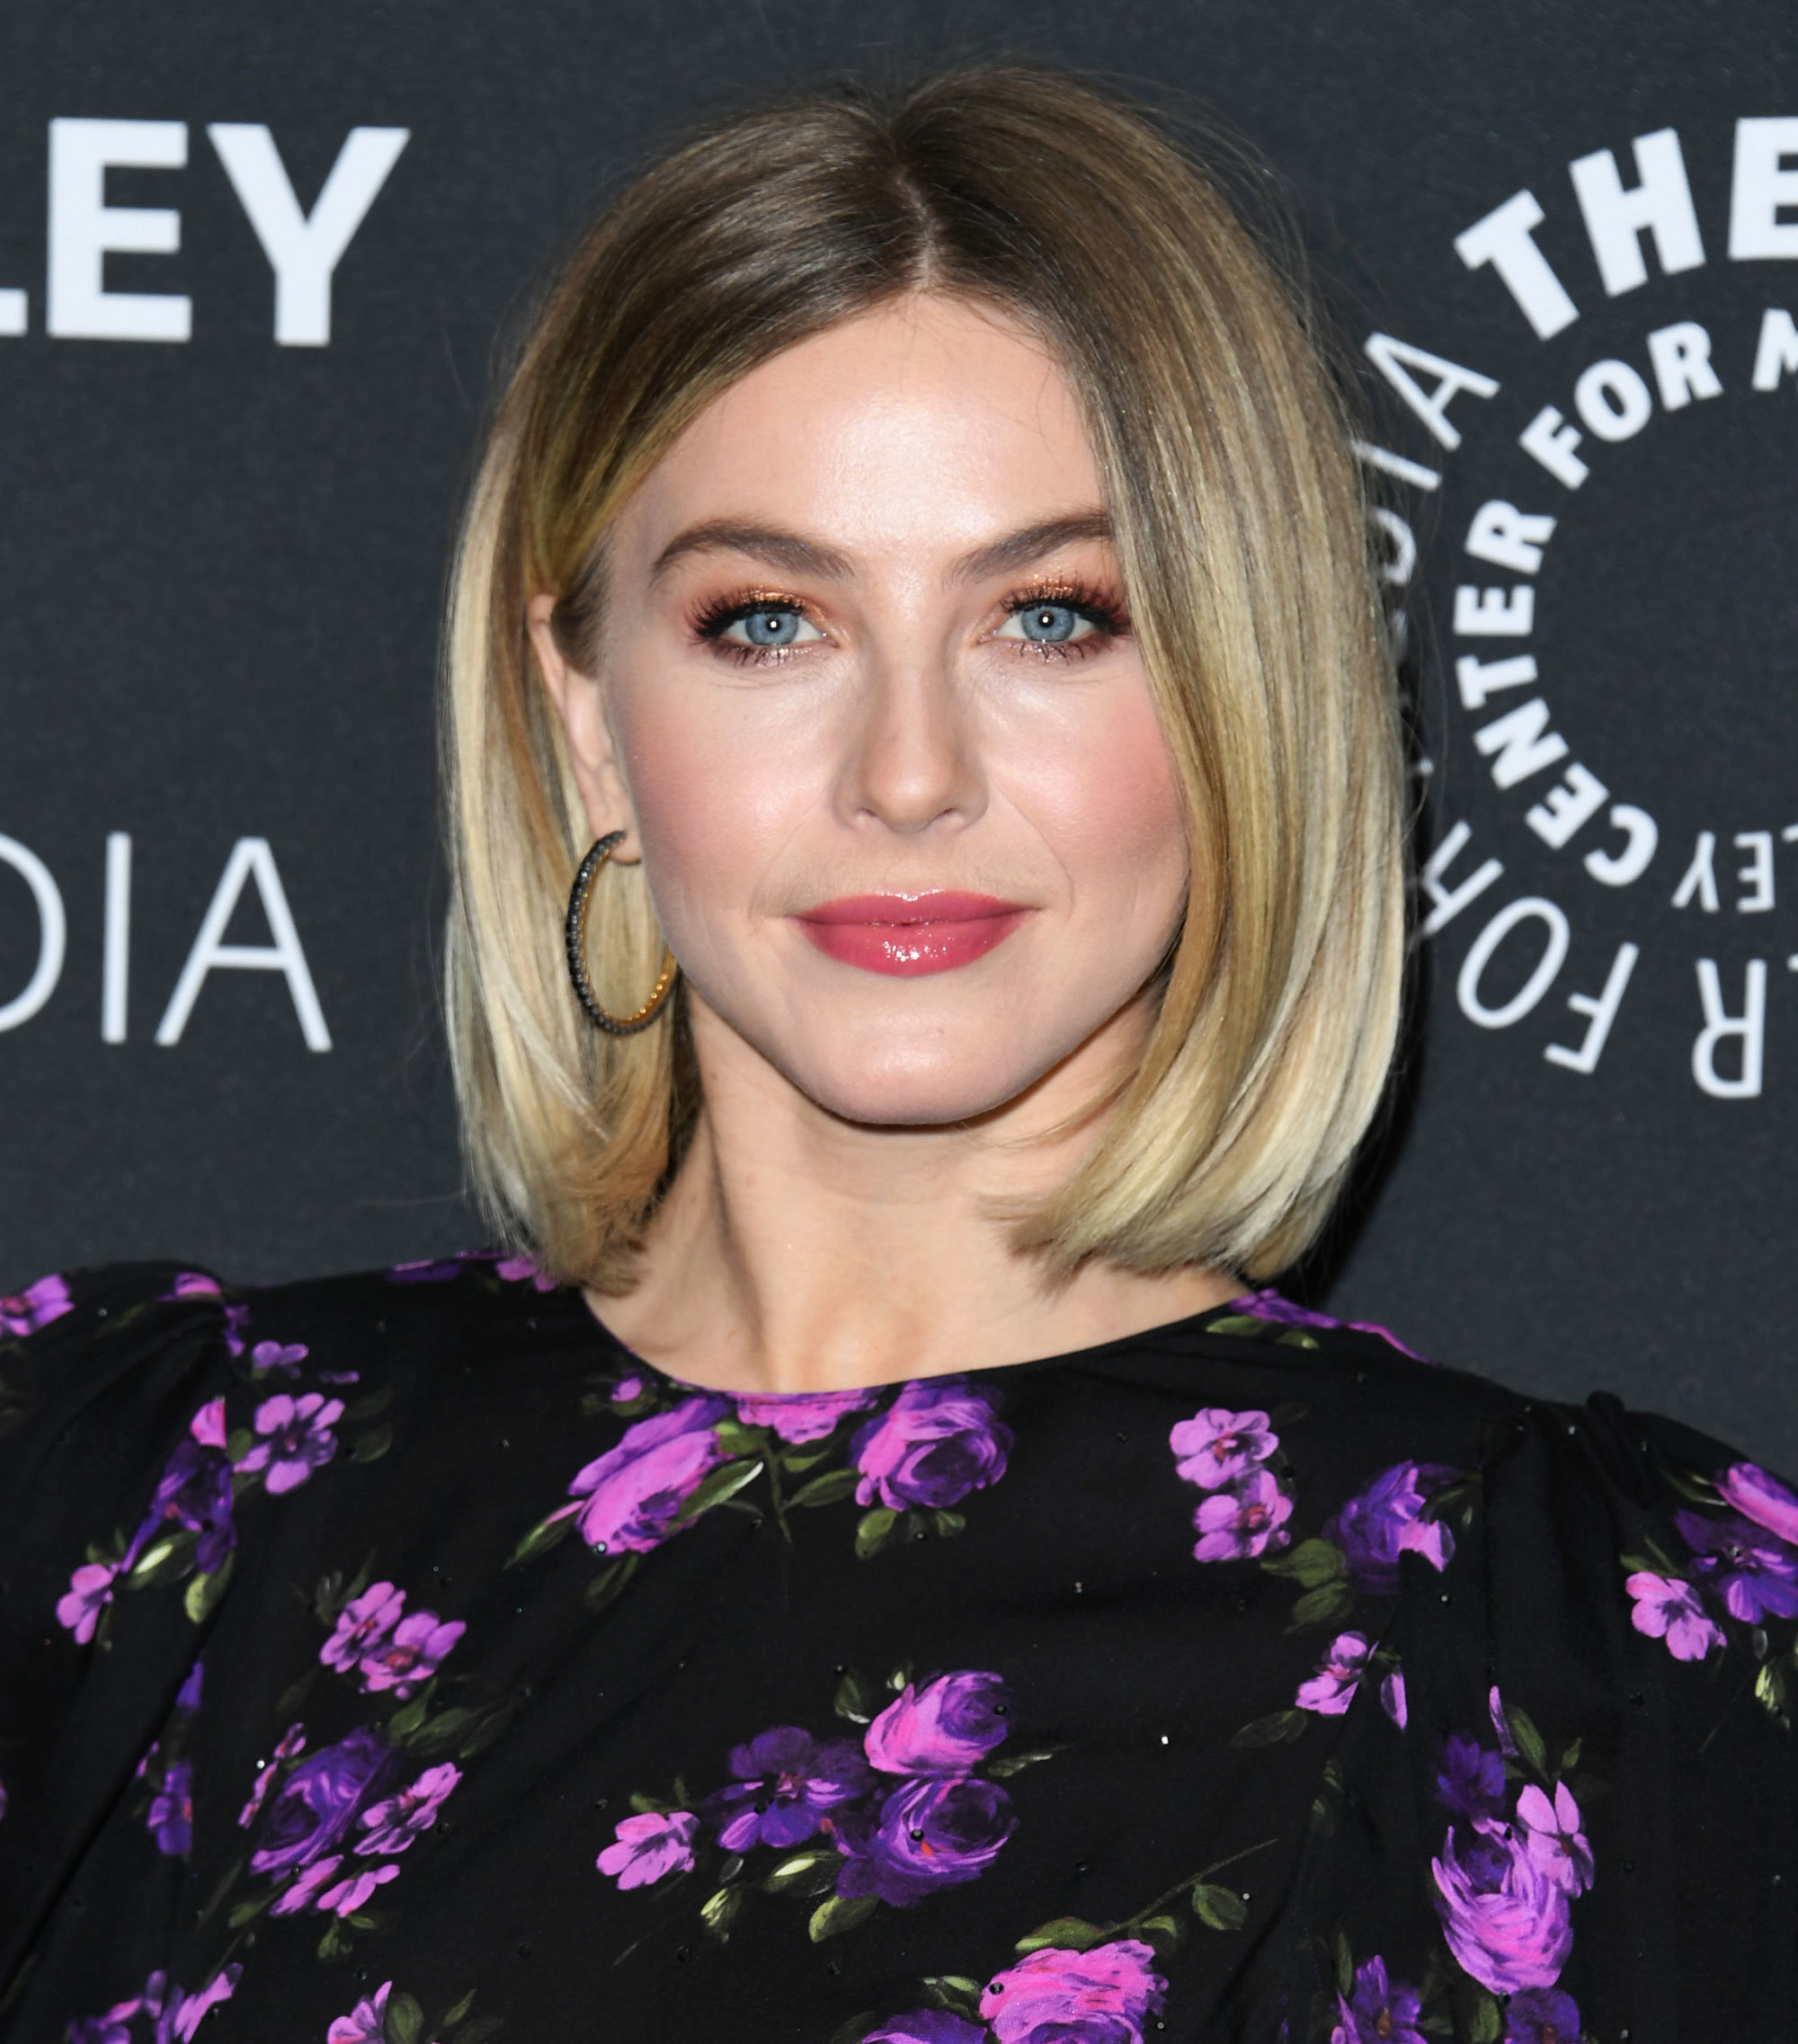 Julianne Hough Hairstyles 2020 Side Layers